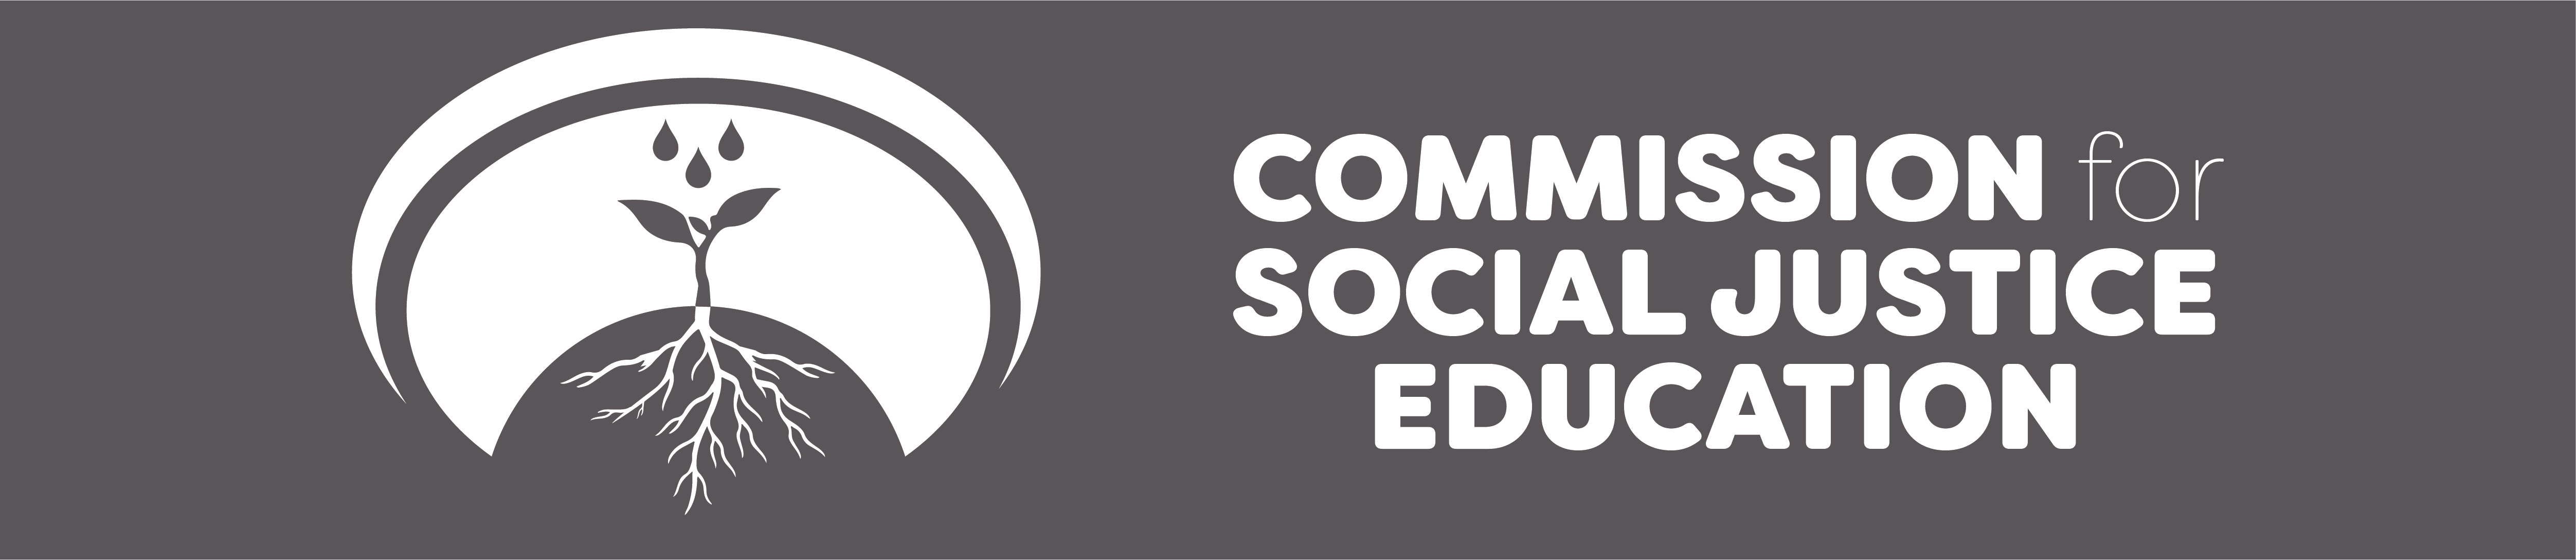 COMMISSION FOR SOCIAL JUSTICE EDUCATION